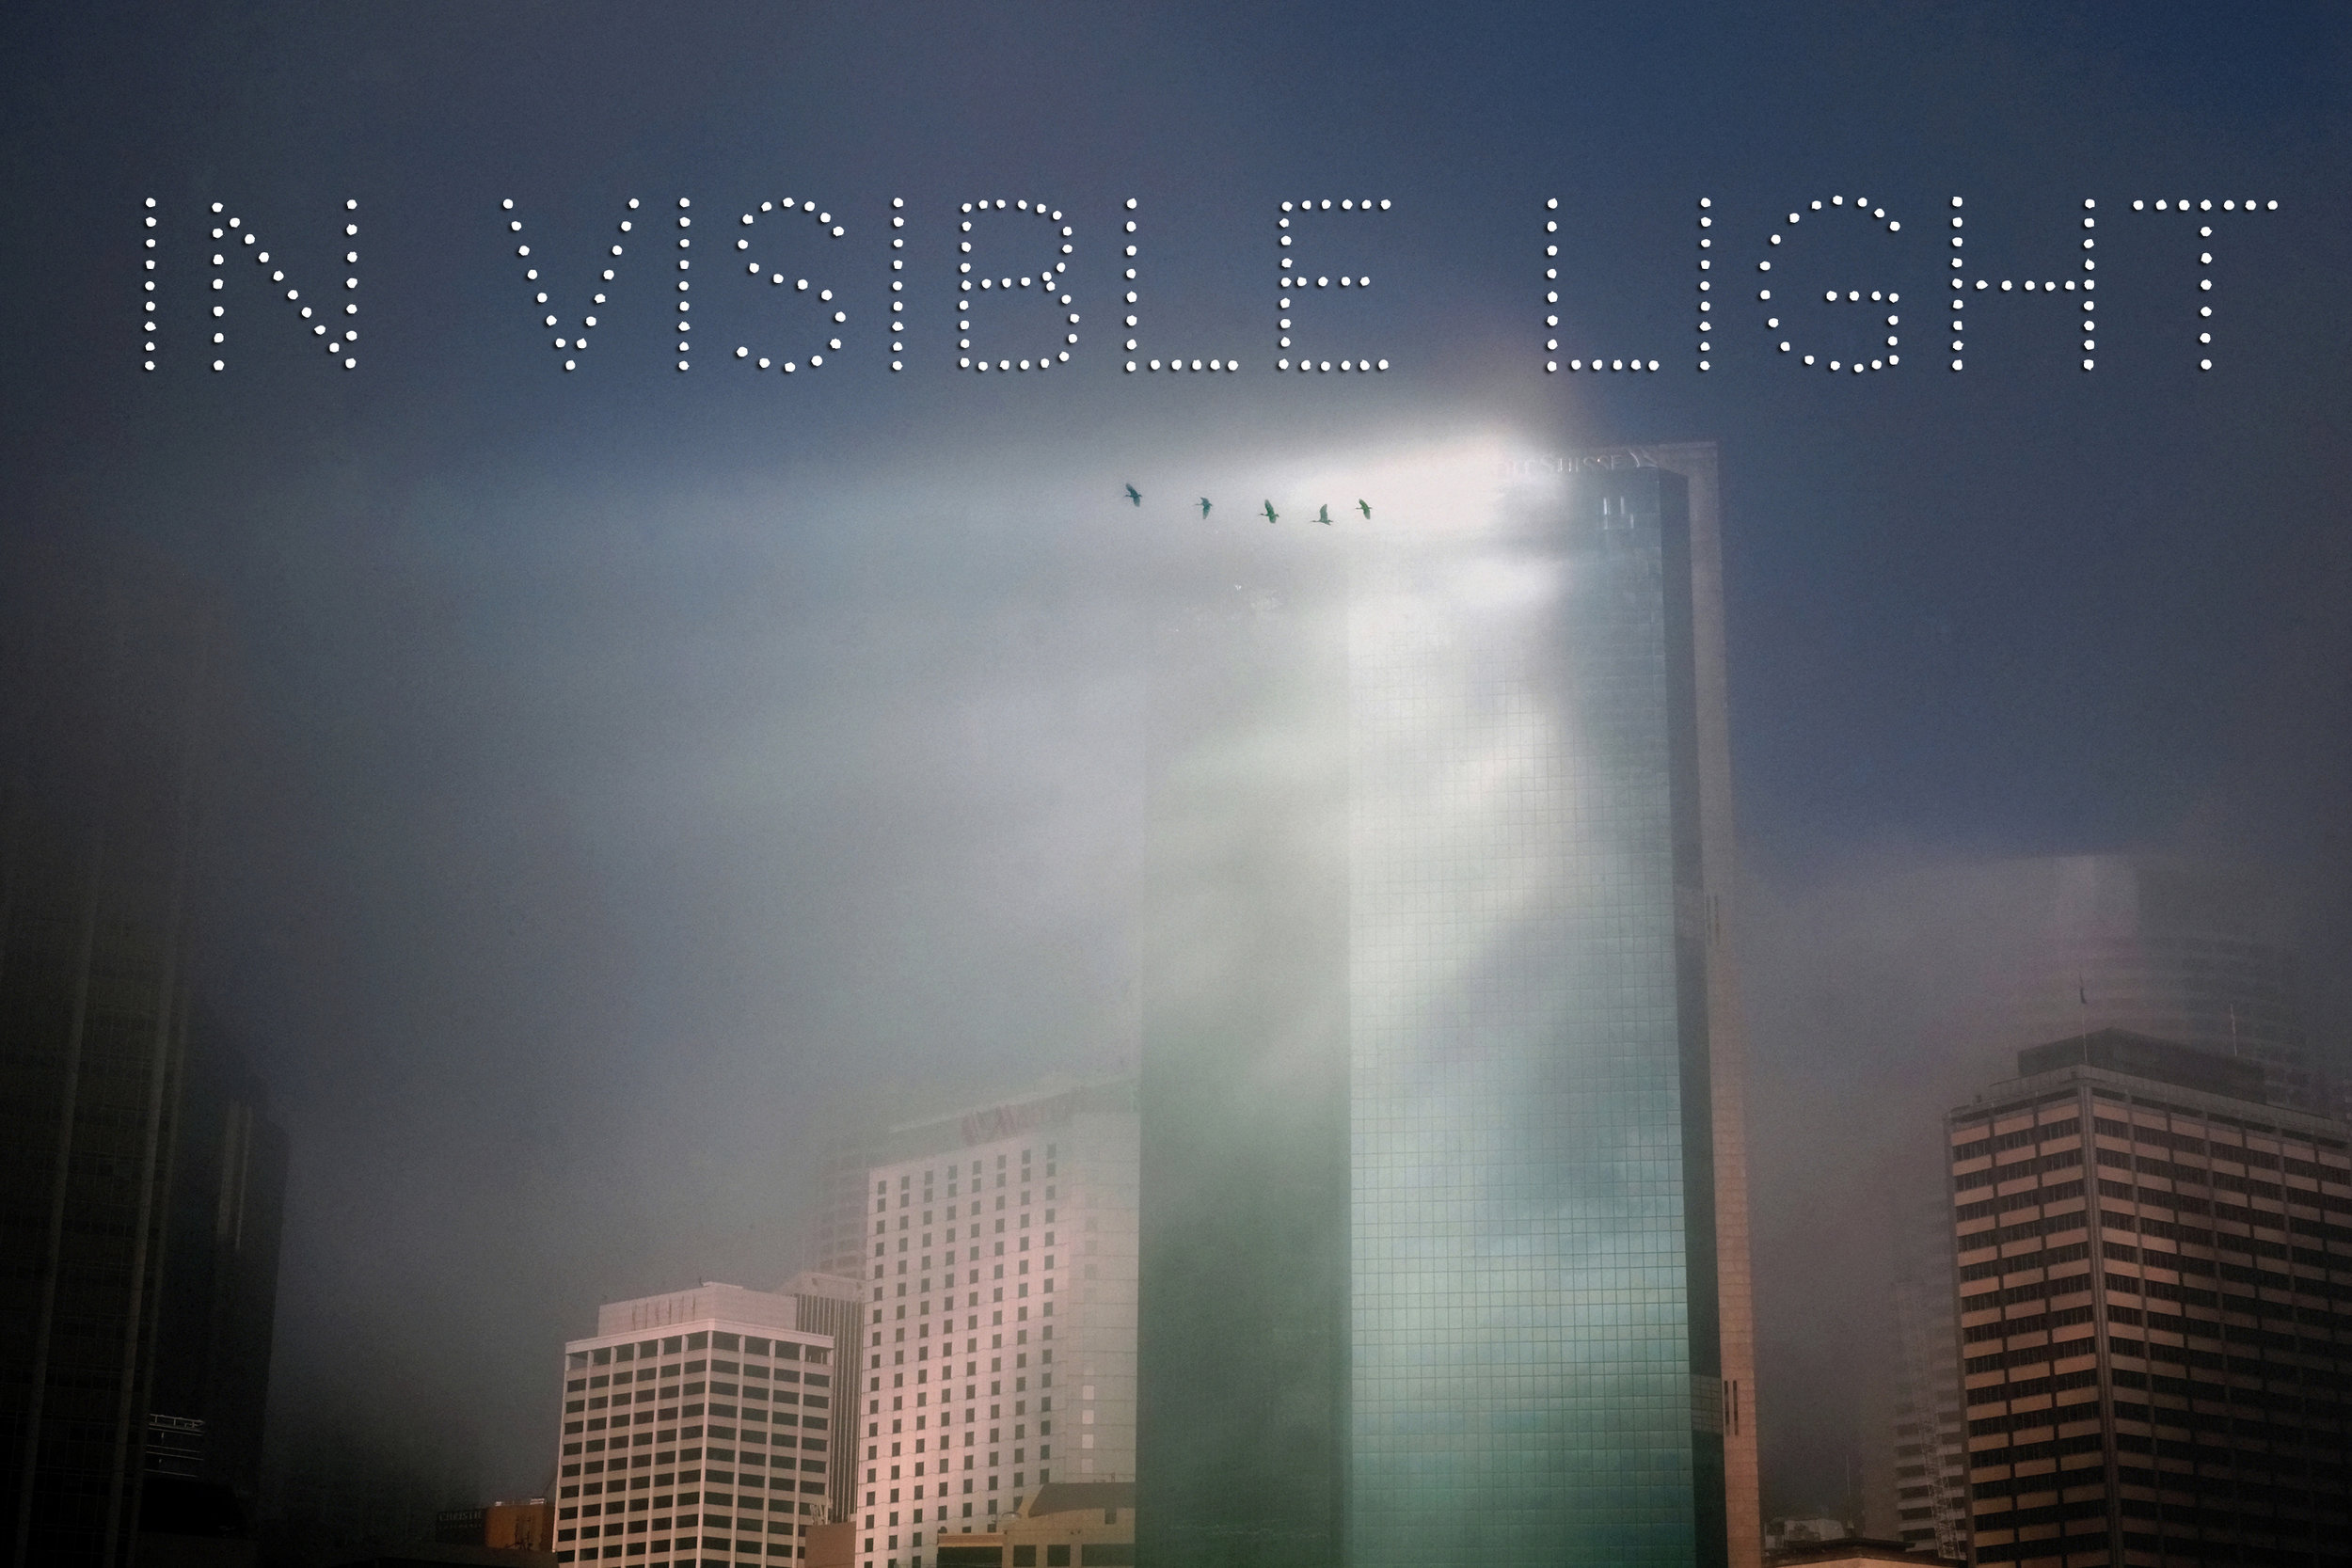 In Visible Light